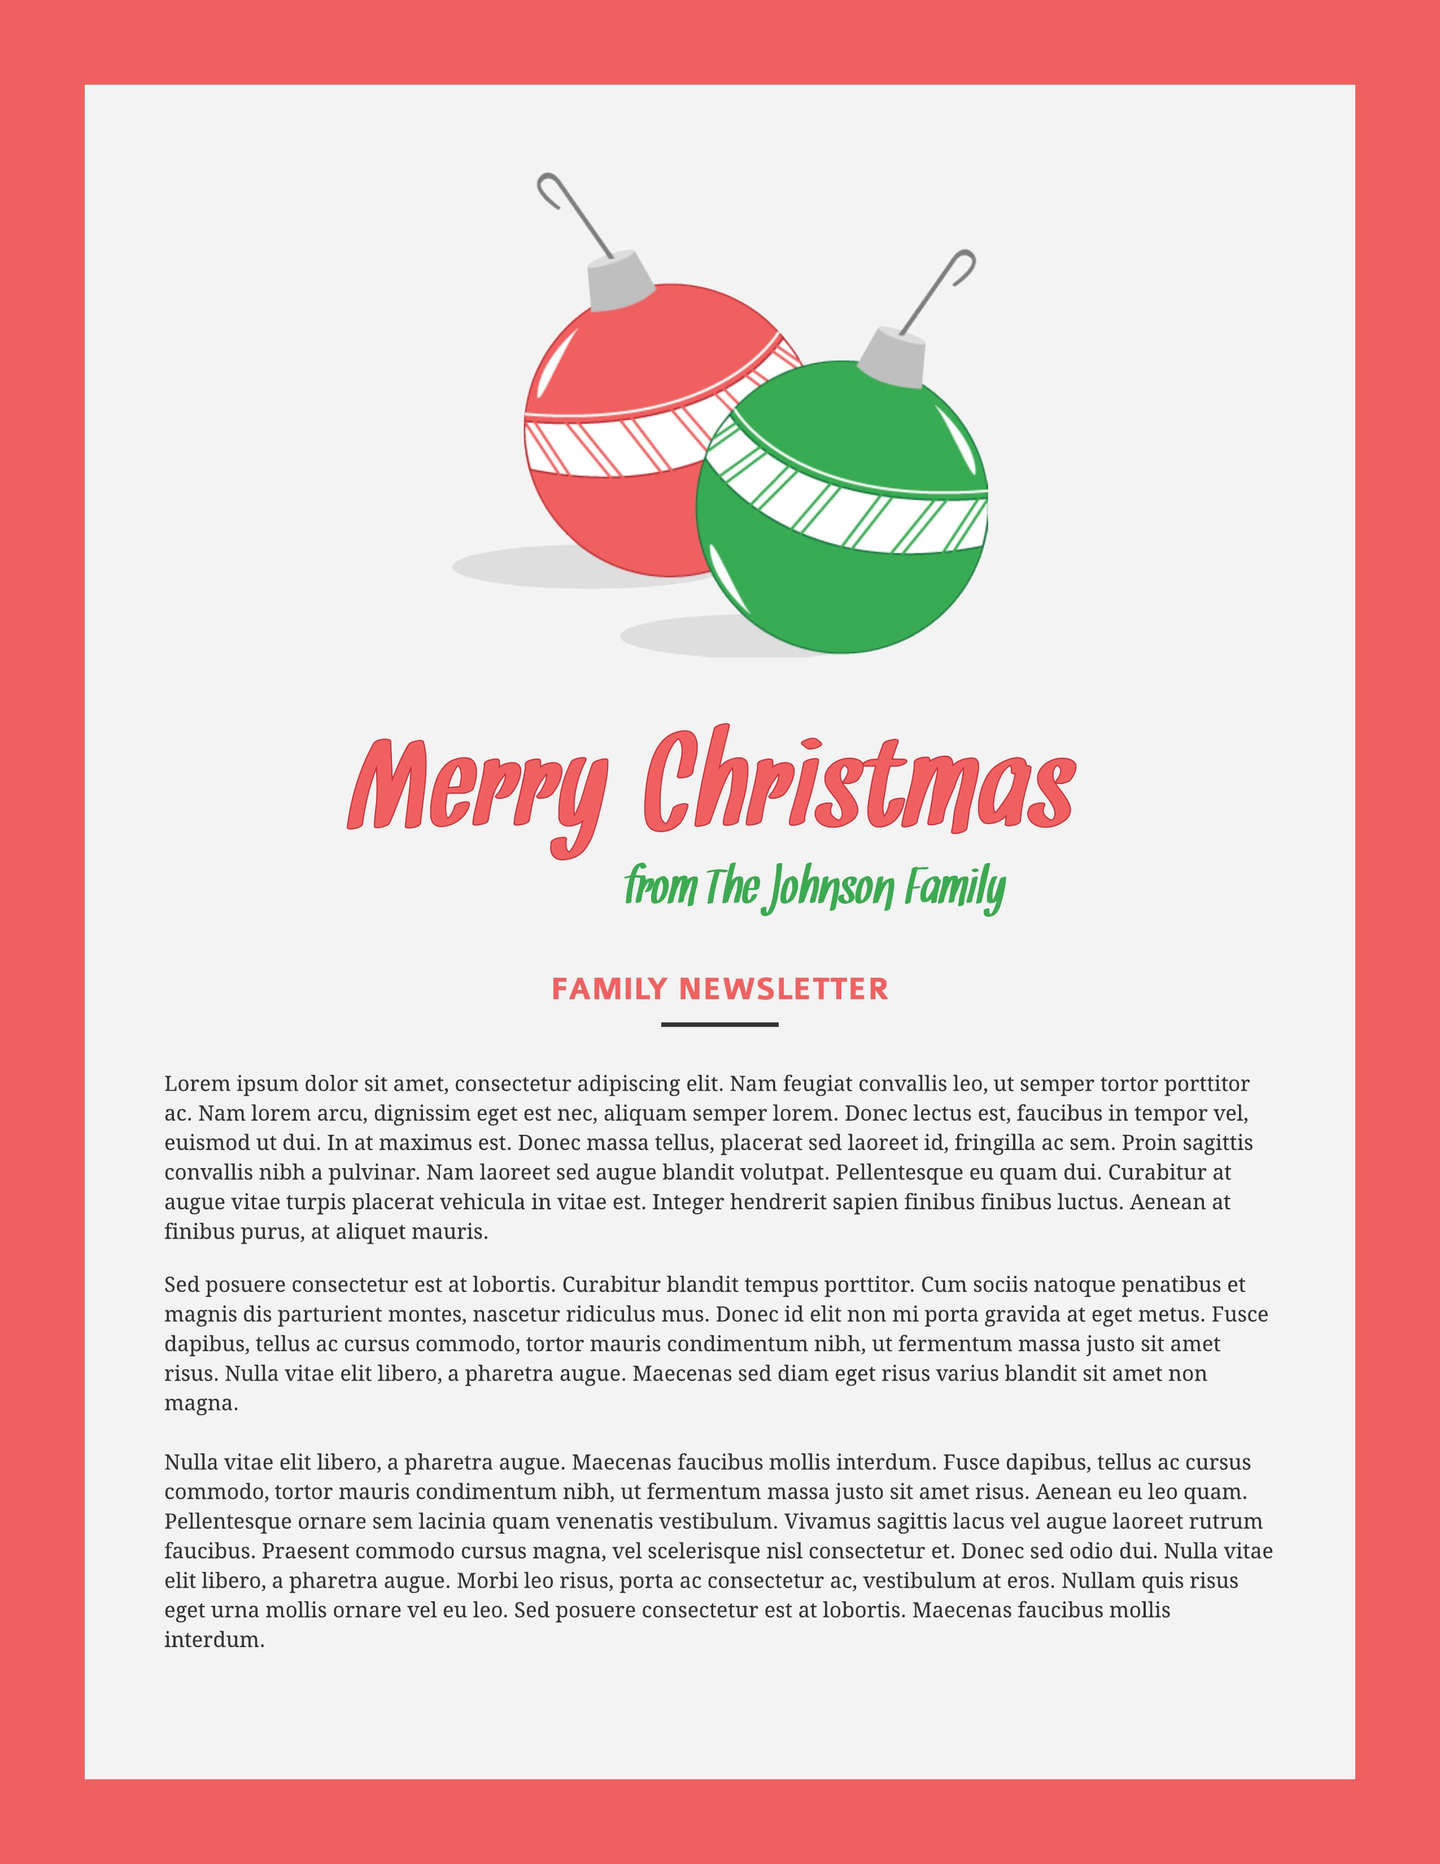 Christmas newsletter examples selol ink christmas newsletter examples free holiday newsletter templates spiritdancerdesigns Choice Image